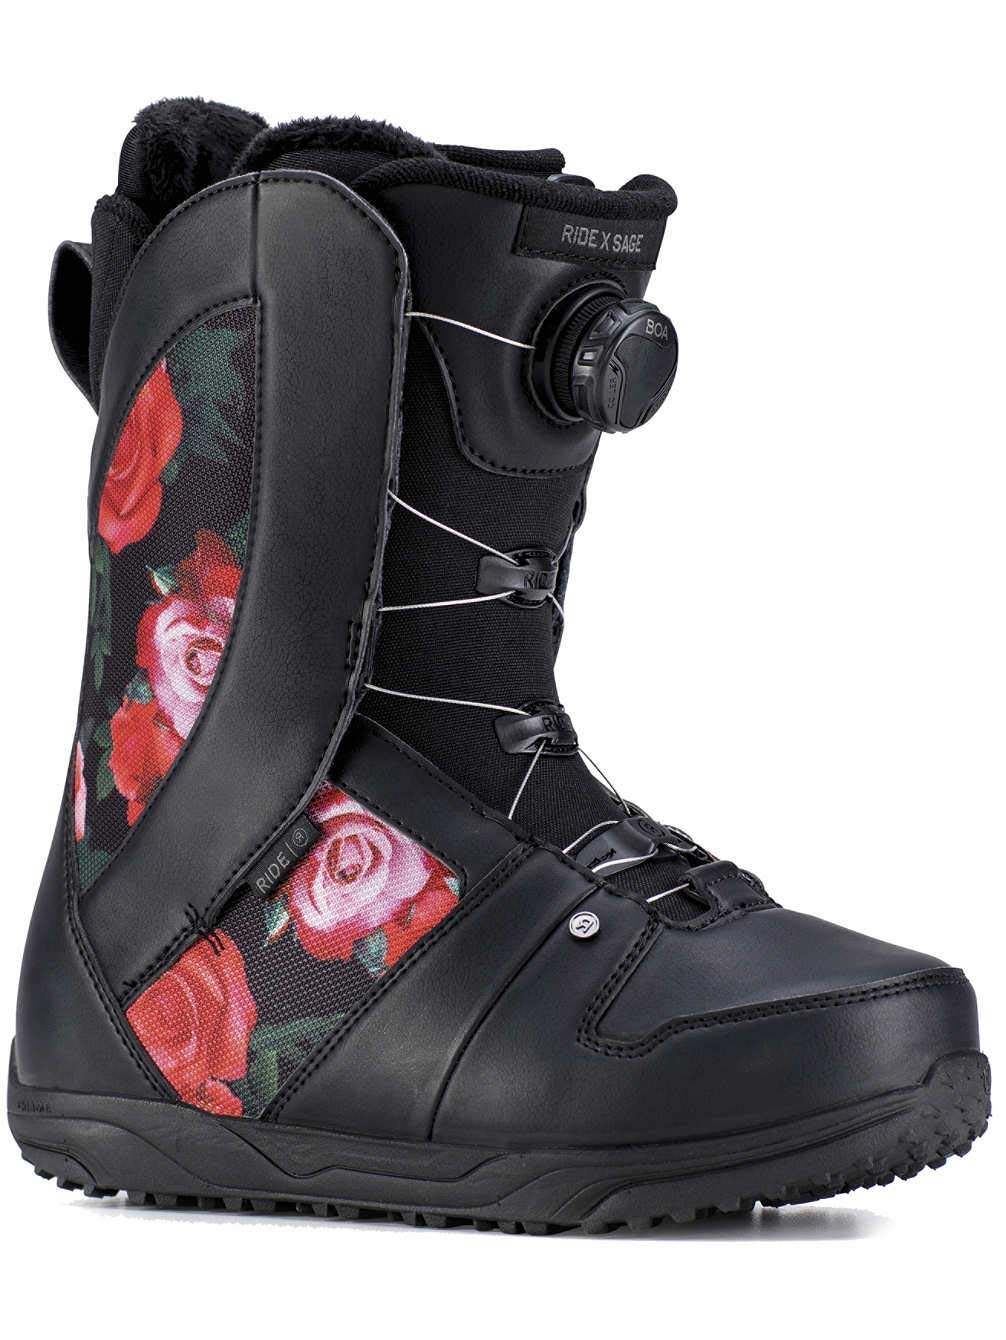 Ride Sage Boa Coiler Womens Snowboard Boots 2019-8.5/Black Rose by Ride